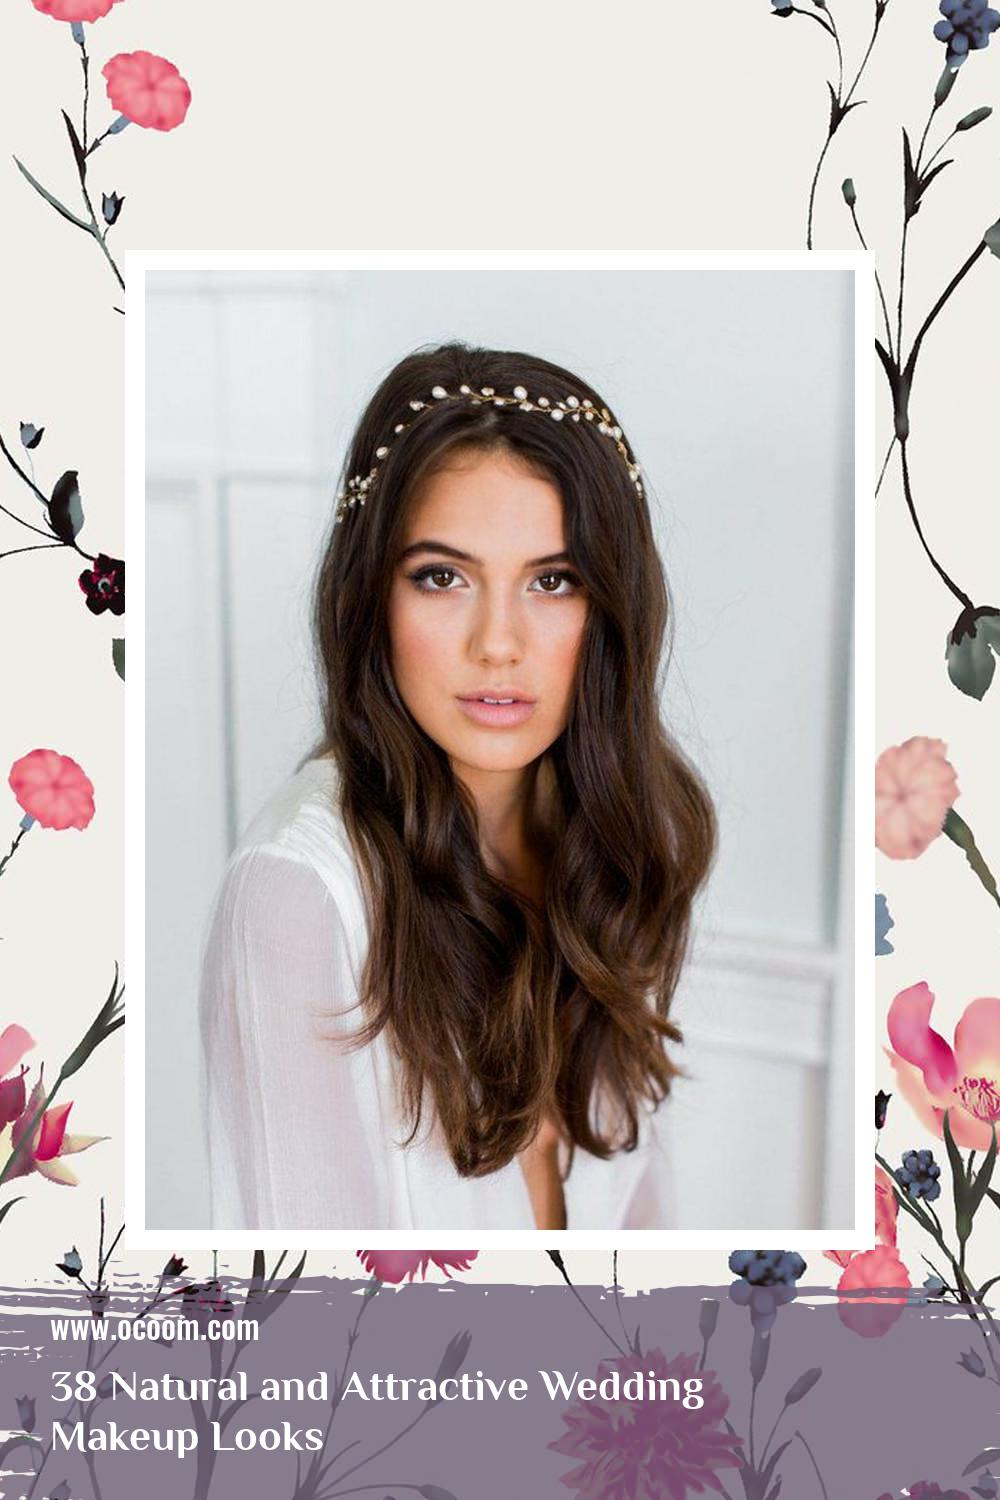 38 Natural and Attractive Wedding Makeup Looks 29